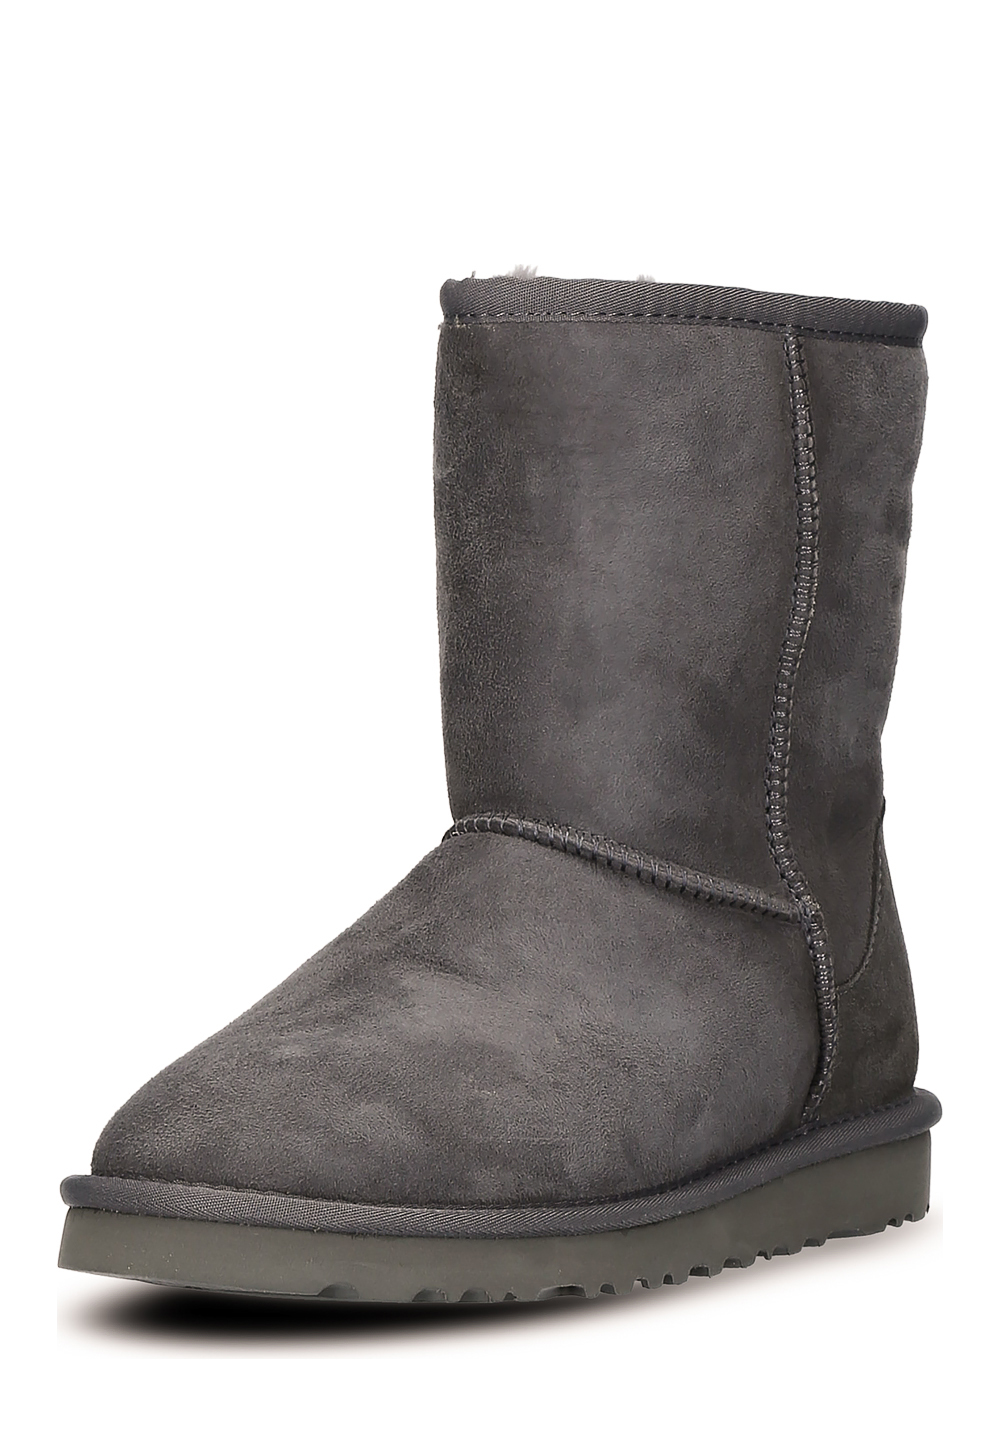 ugg australia boots damen schuhe classic short lammfell. Black Bedroom Furniture Sets. Home Design Ideas